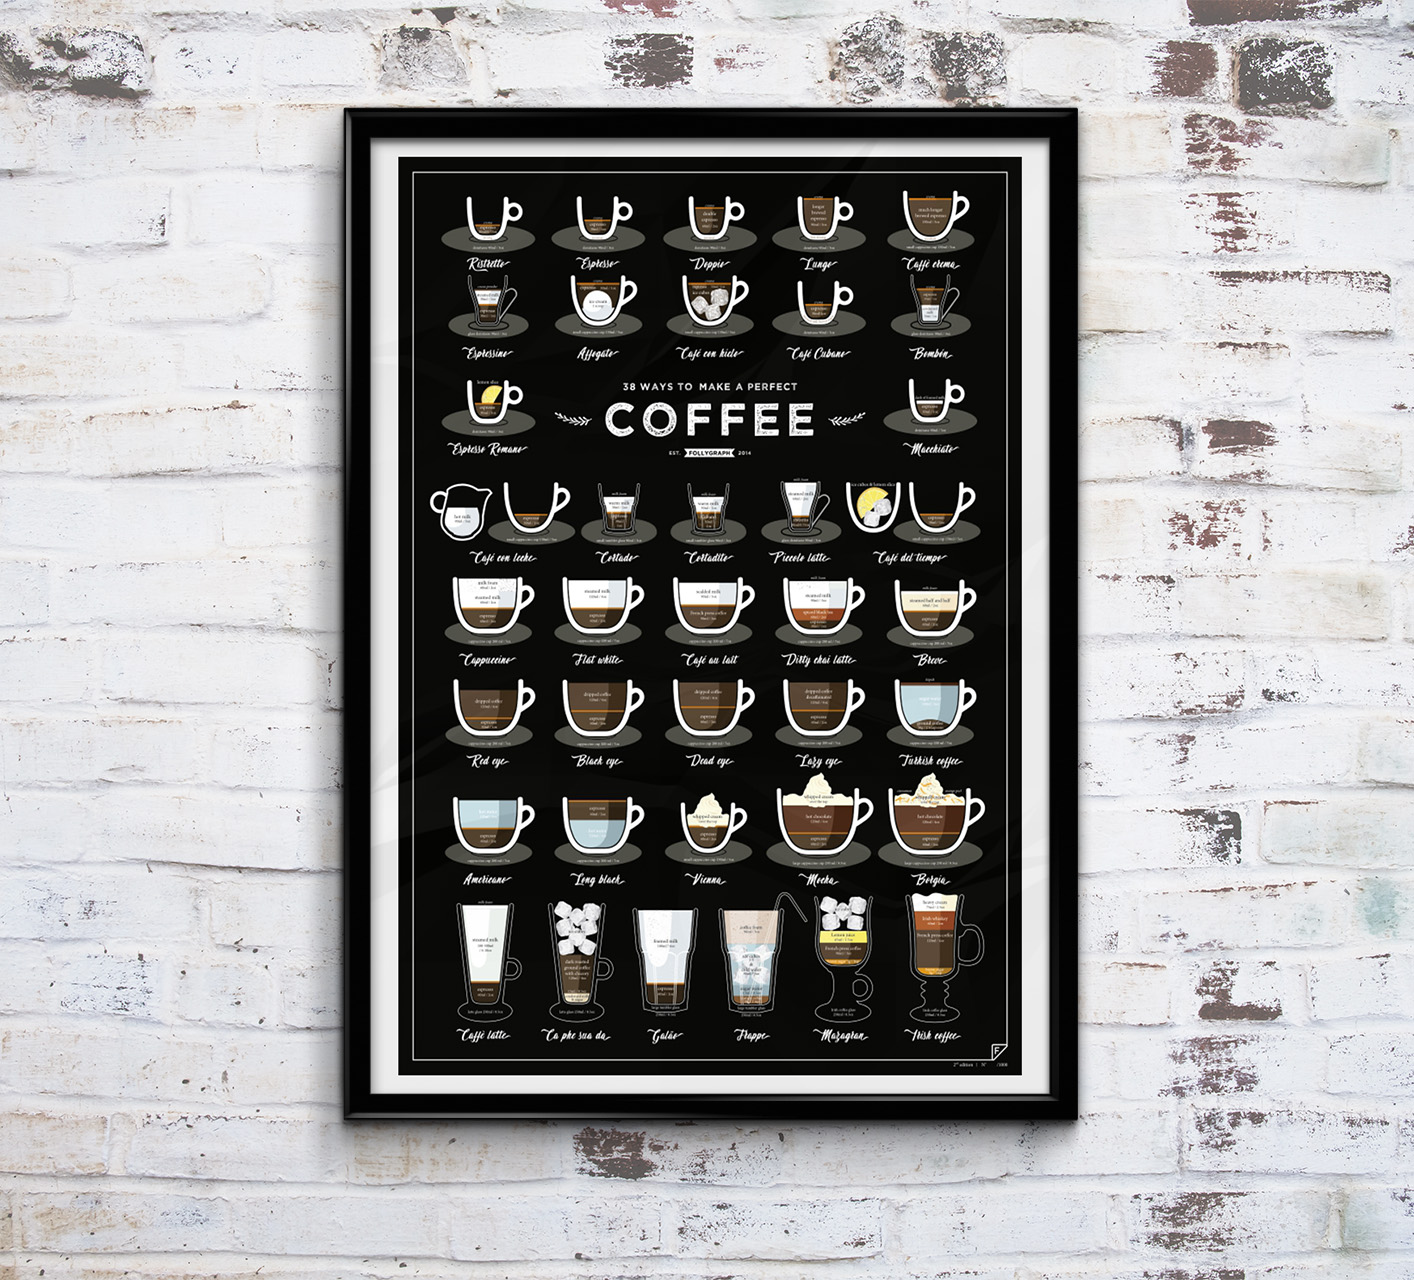 38 Ways To Make The Perfect Cup Of Coffee Poster4